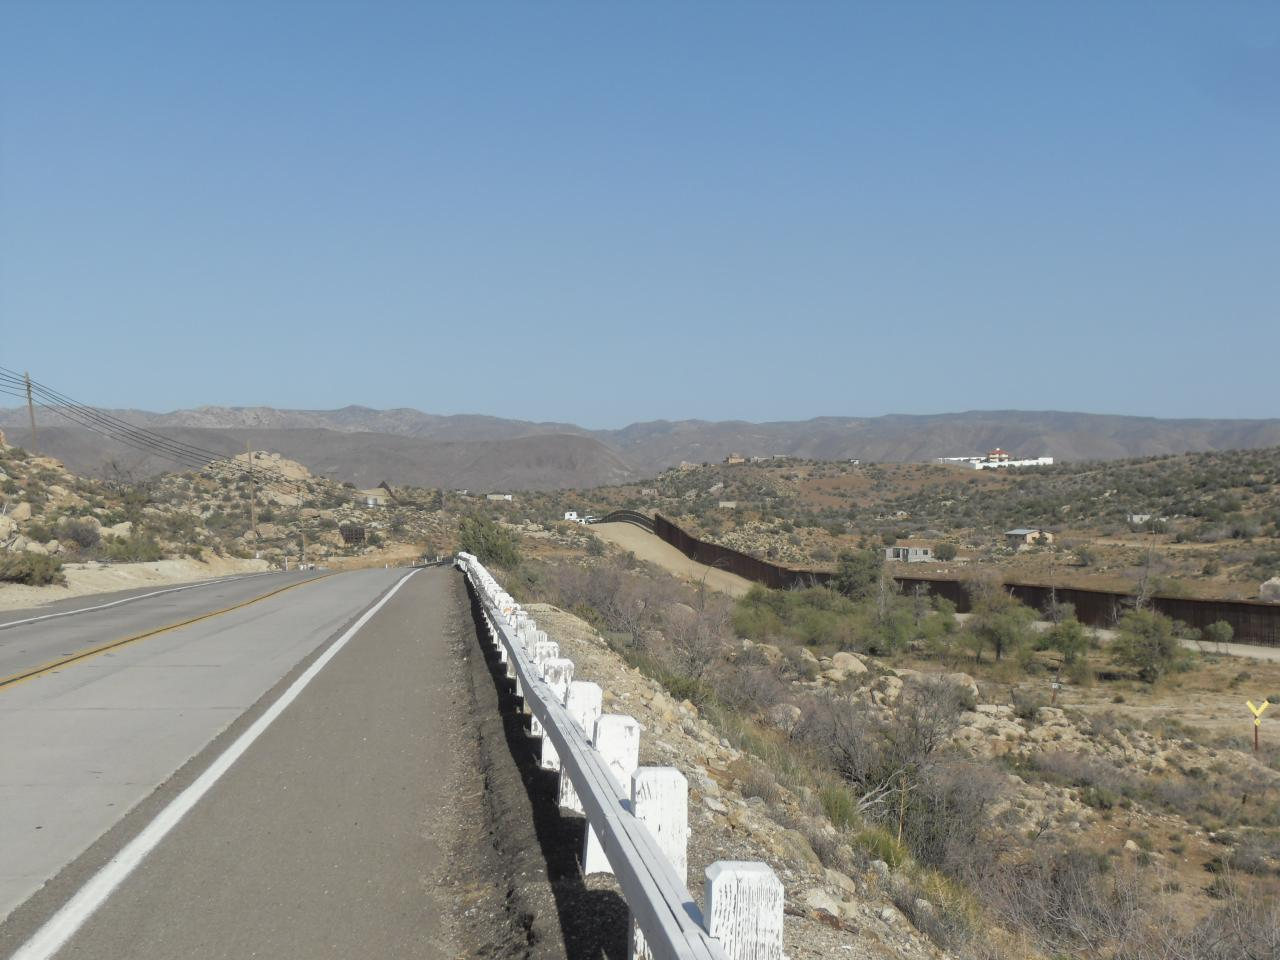 Near Jacumba and the   United States / Mexico border fence